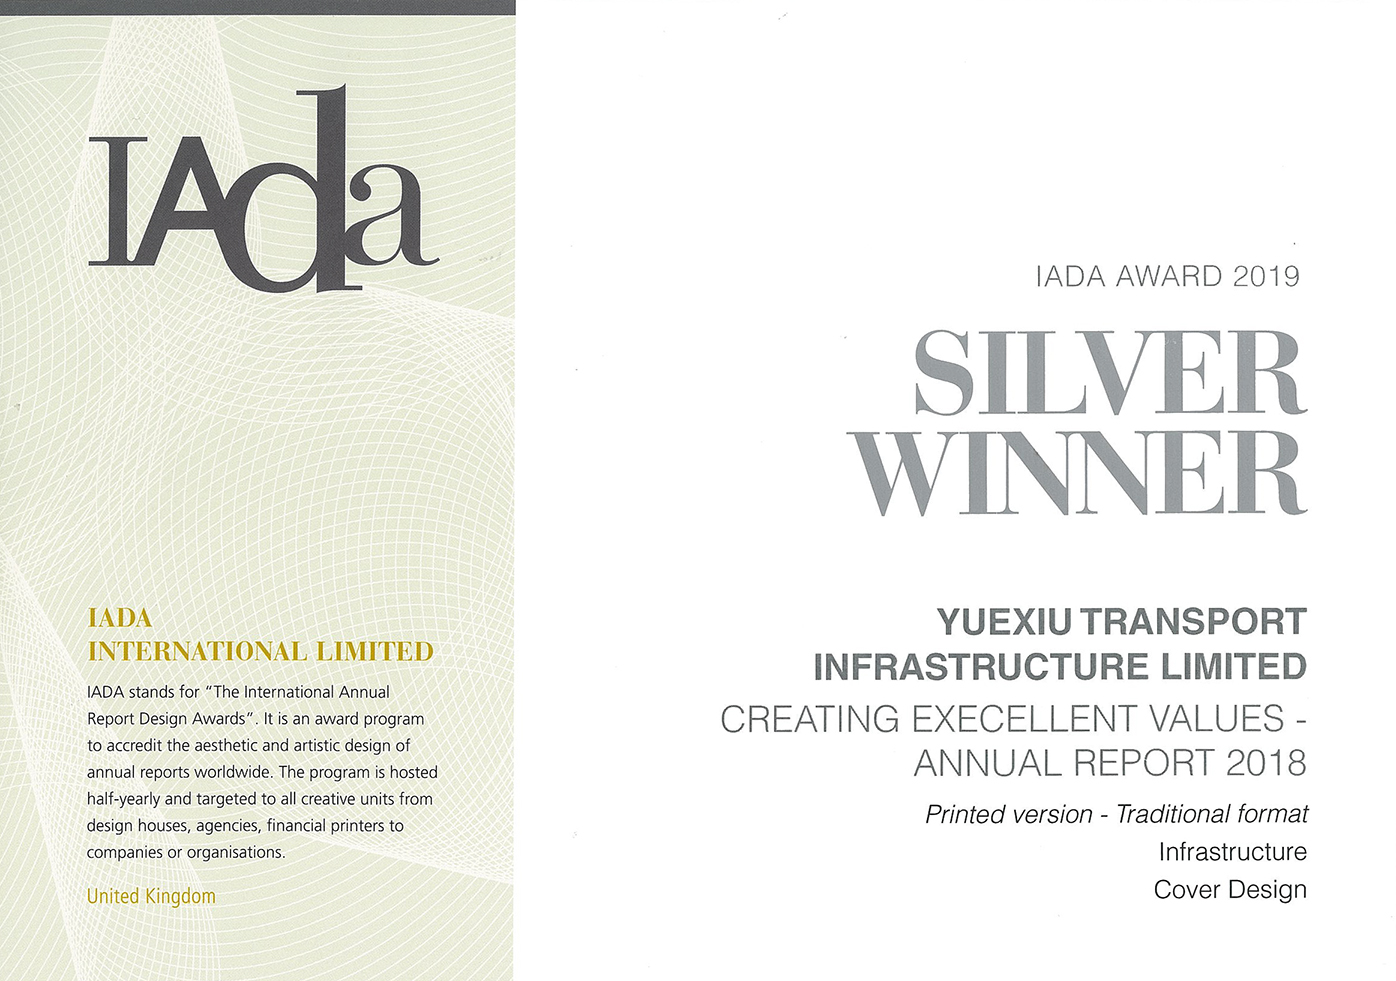 YUEXIU TRANSPORT INFRASTRUCTURE LIMITED – IADA AWARD 2019 SILVER WINNER